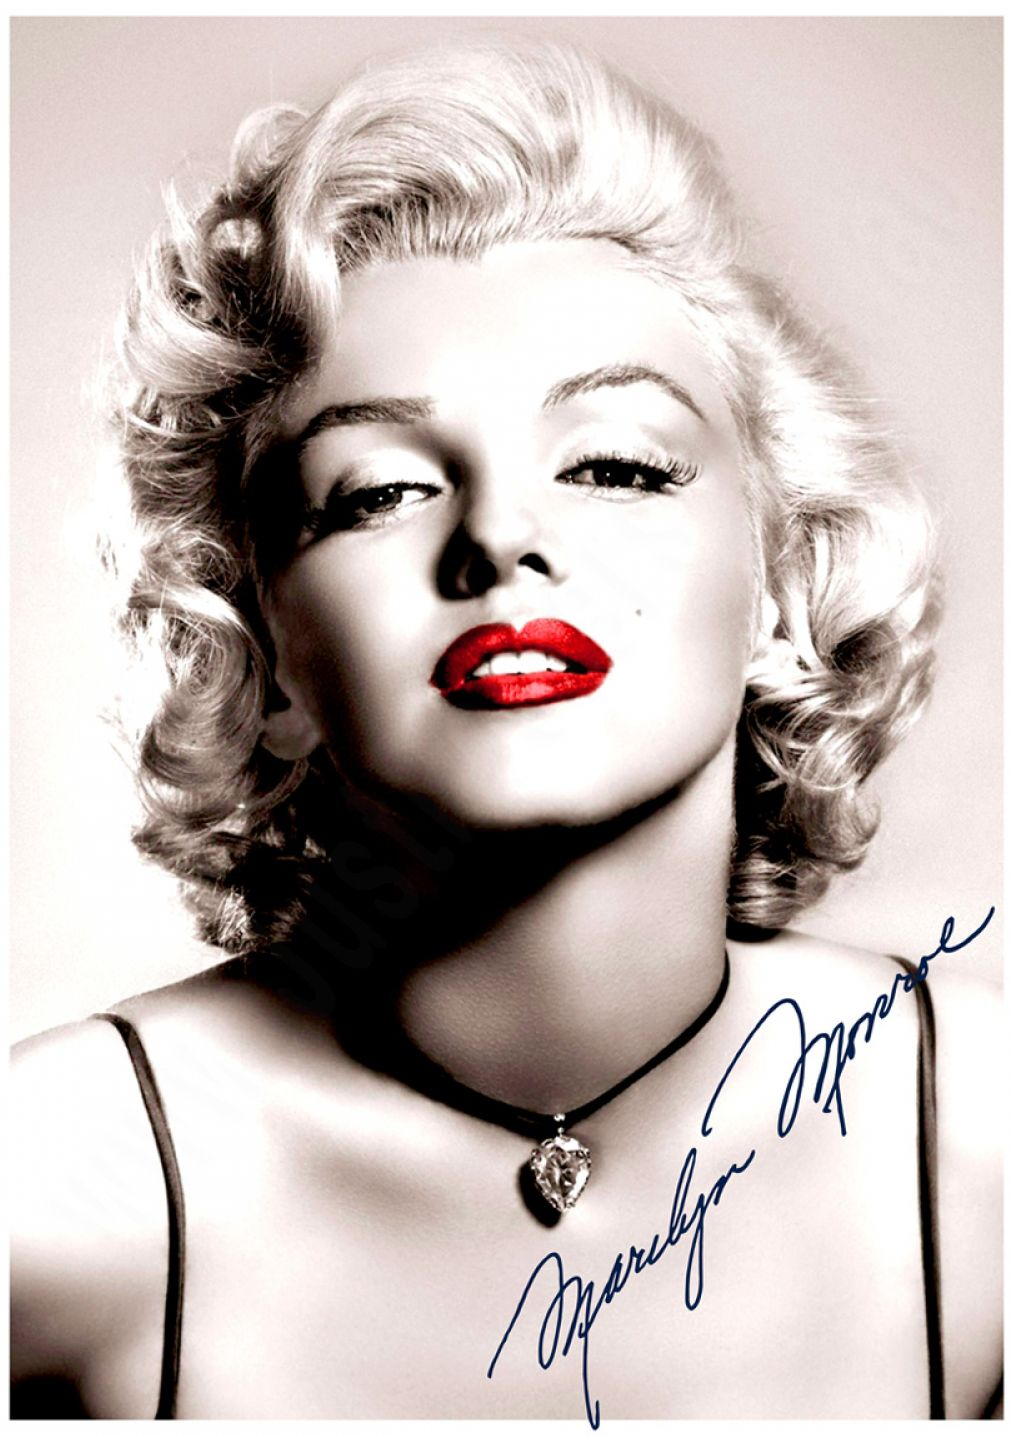 Disque Alimentaire Maryline Monroe Marilyn Monroe Art Marilyn Monroe Monroe